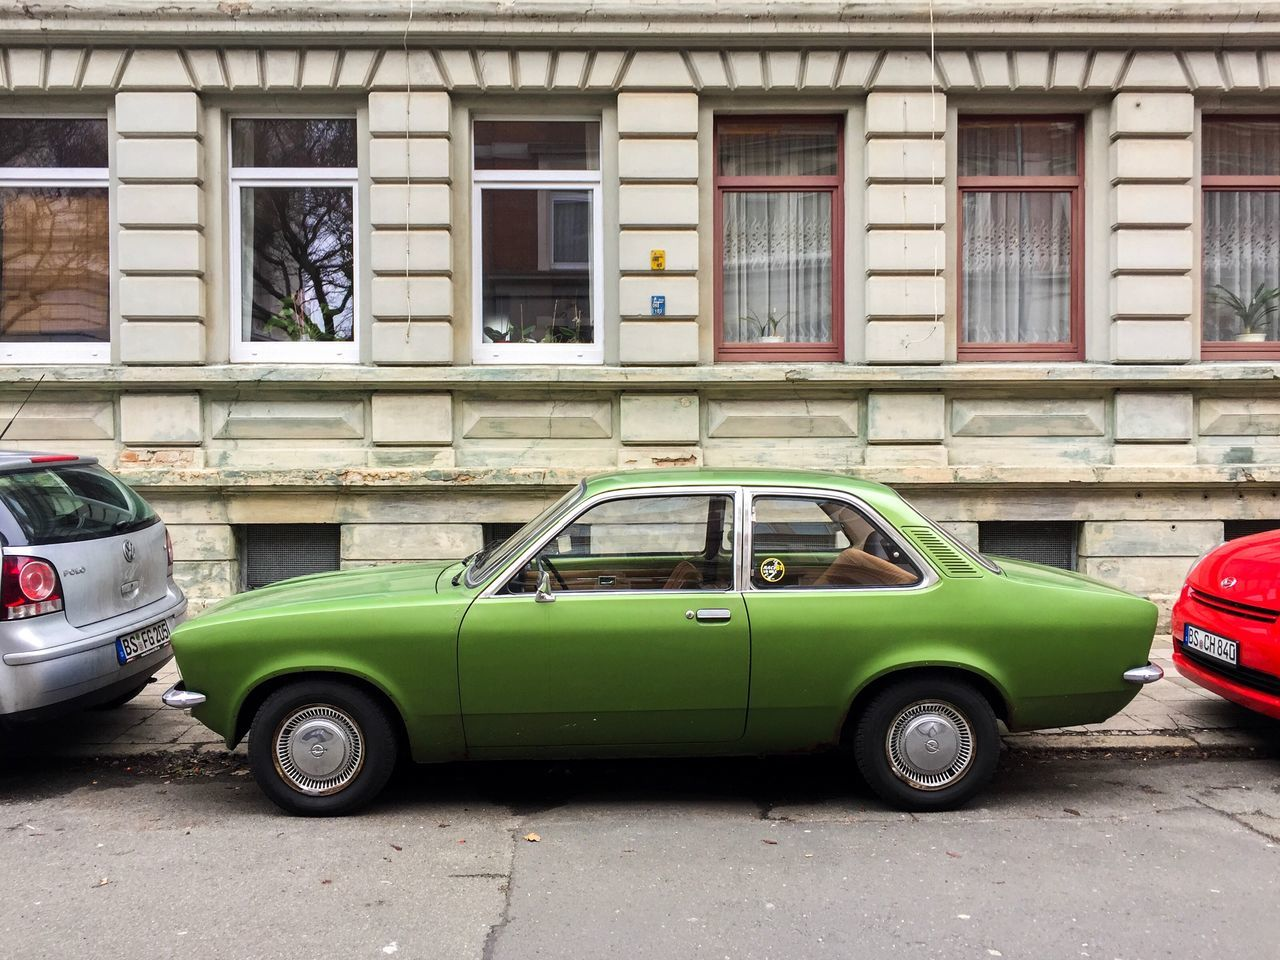 Car Opel Transportation Mode Of Transport Land Vehicle Building Exterior Architecture Built Structure Stationary Parking Outdoors Day No People Transportation Brunswick Lowersaxony Niedersachsen